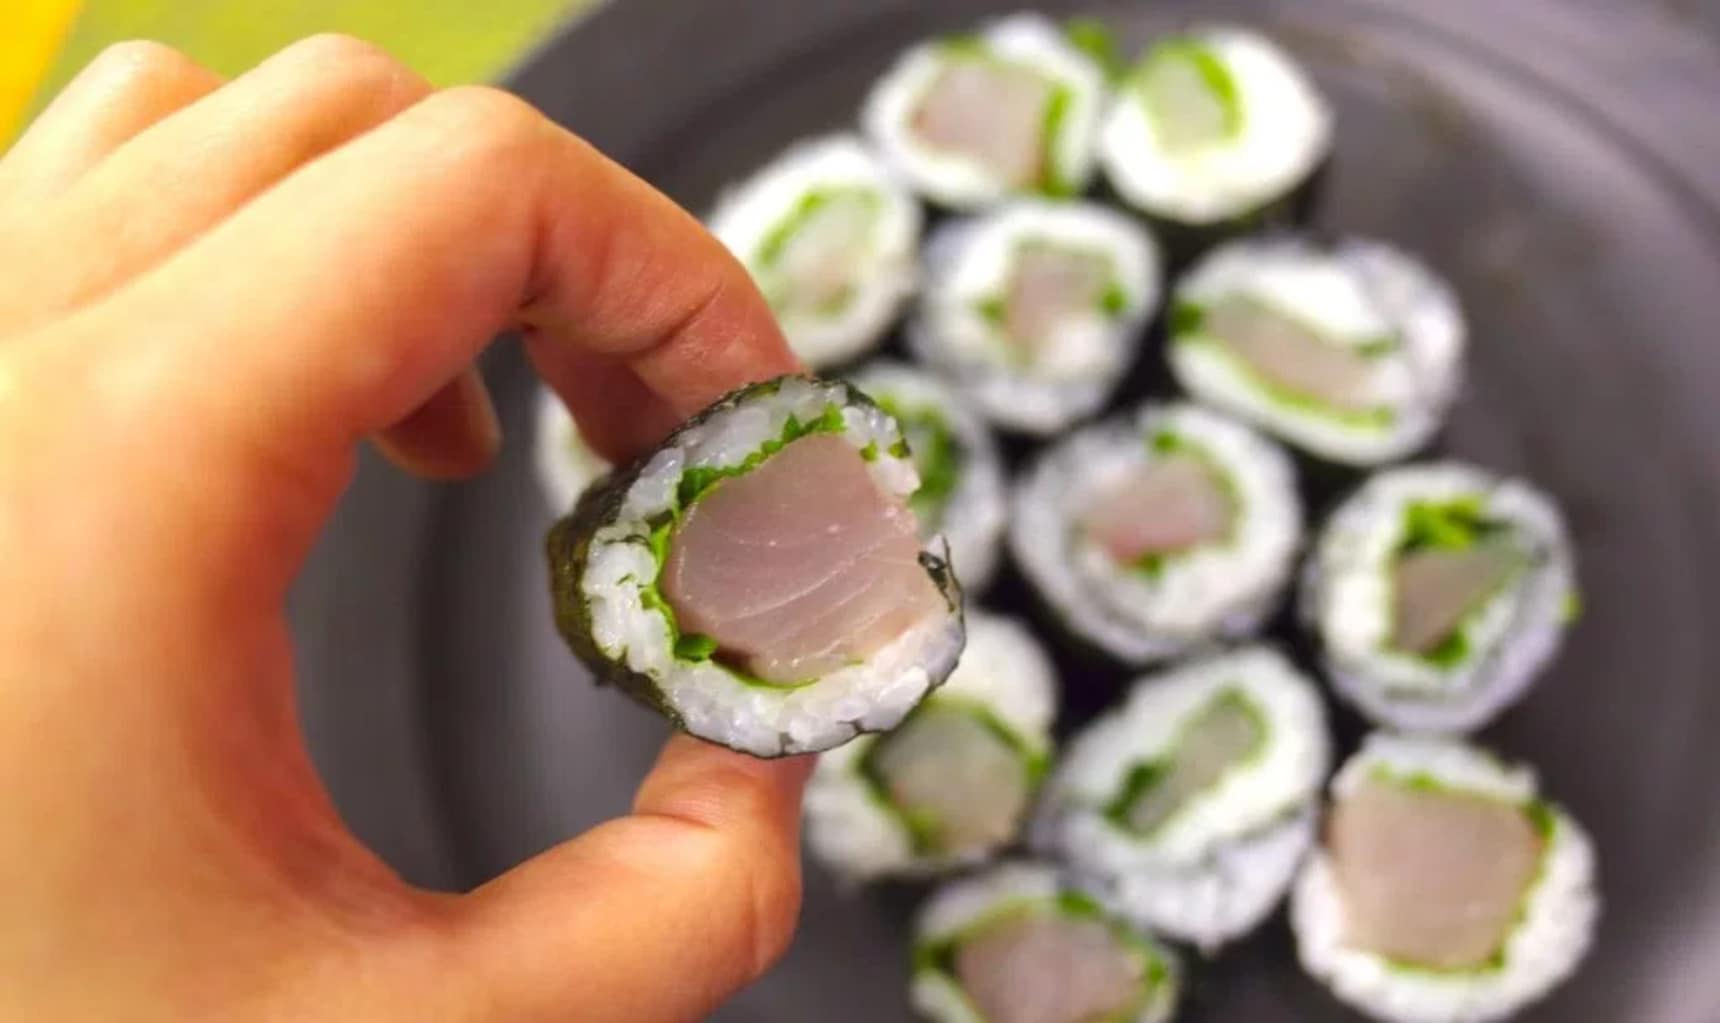 Why Is This Sushi Roll White Instead of Red?